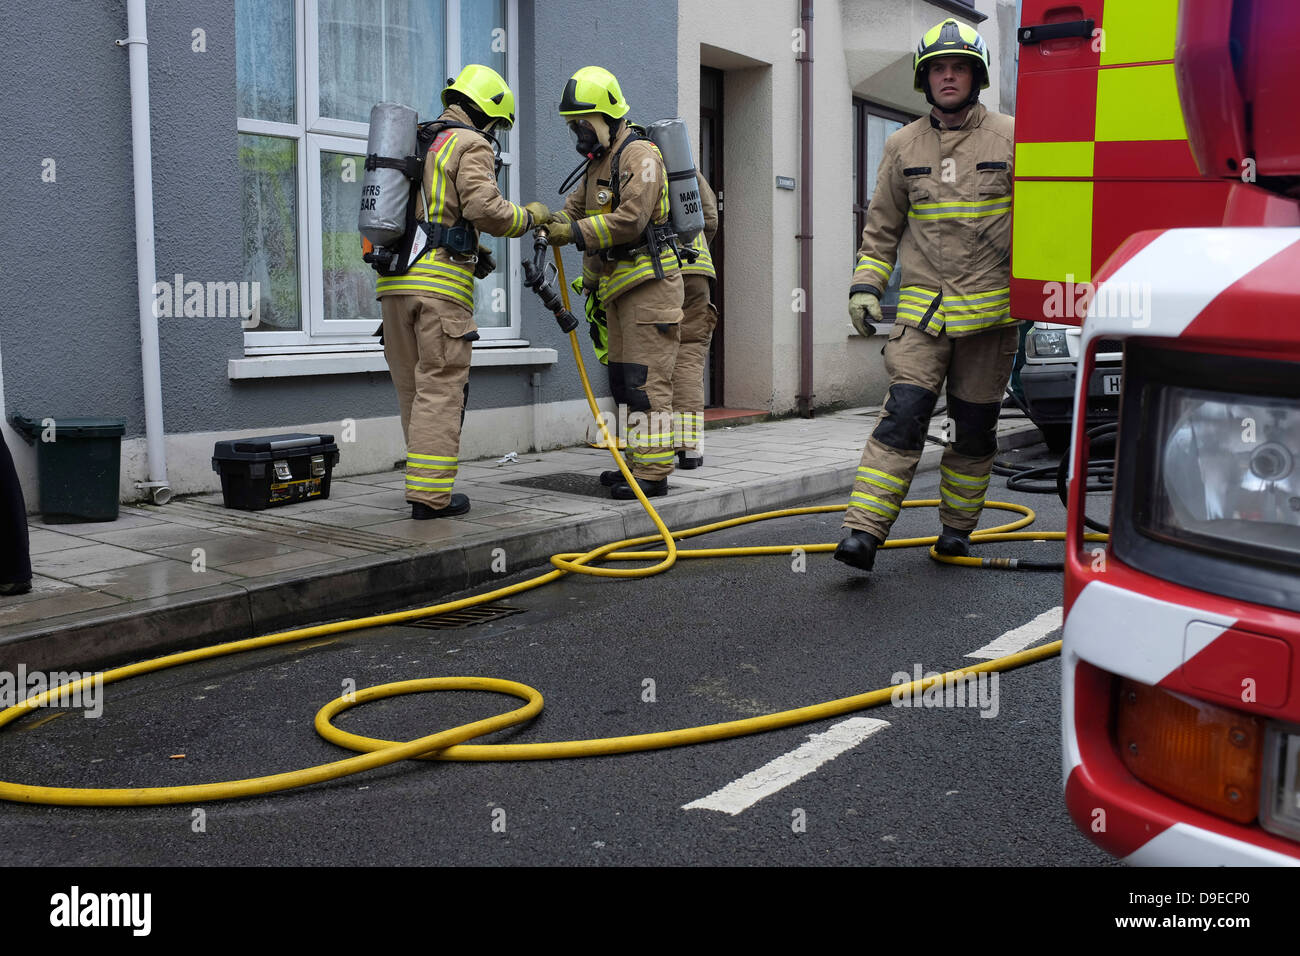 Emergency services (fire brigade) attending a kitchen fire in a house, Aberystwyth UK - Stock Image